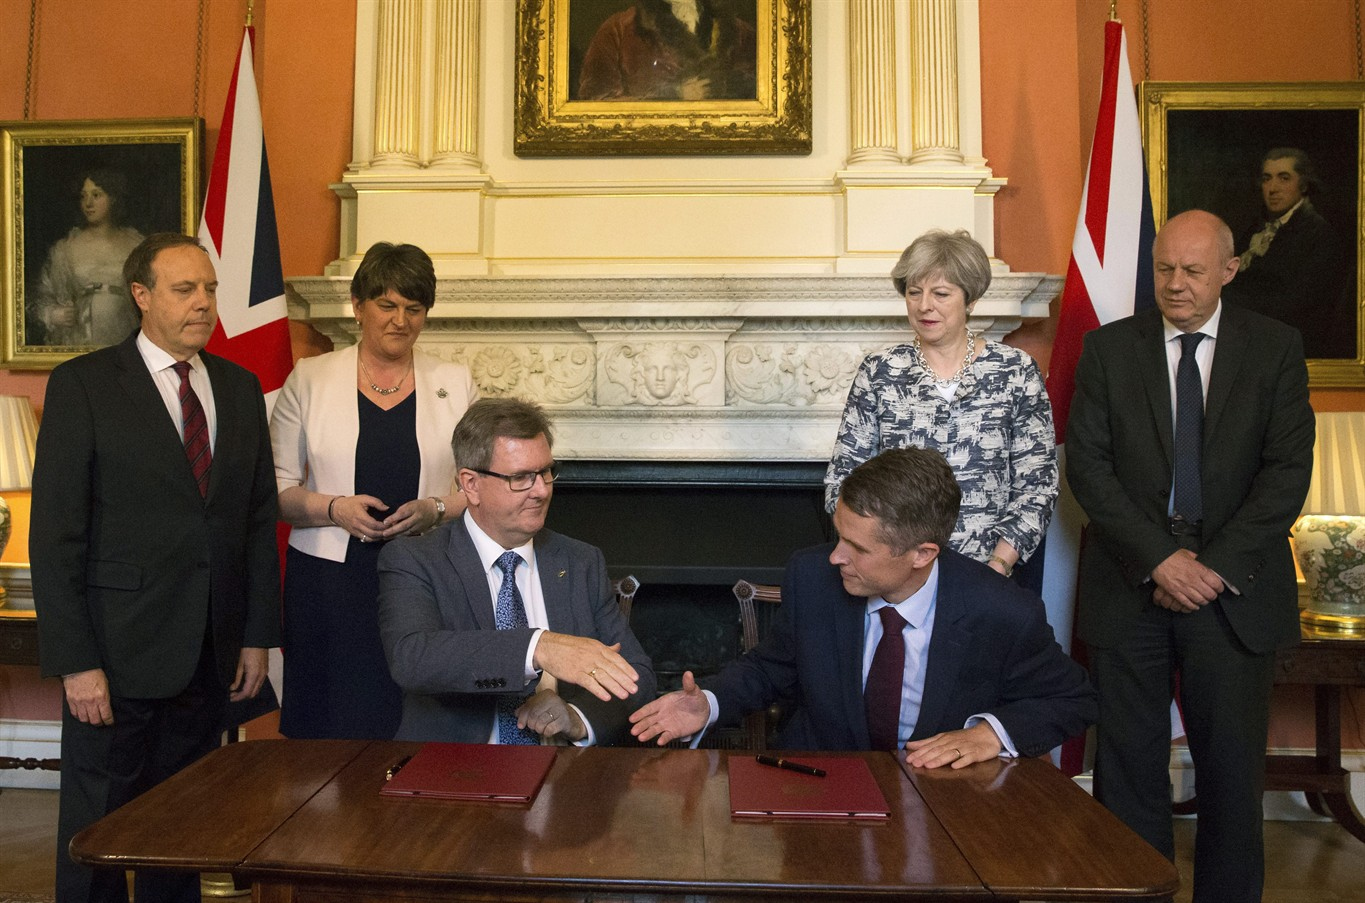 British leader reaches deal she needs to govern